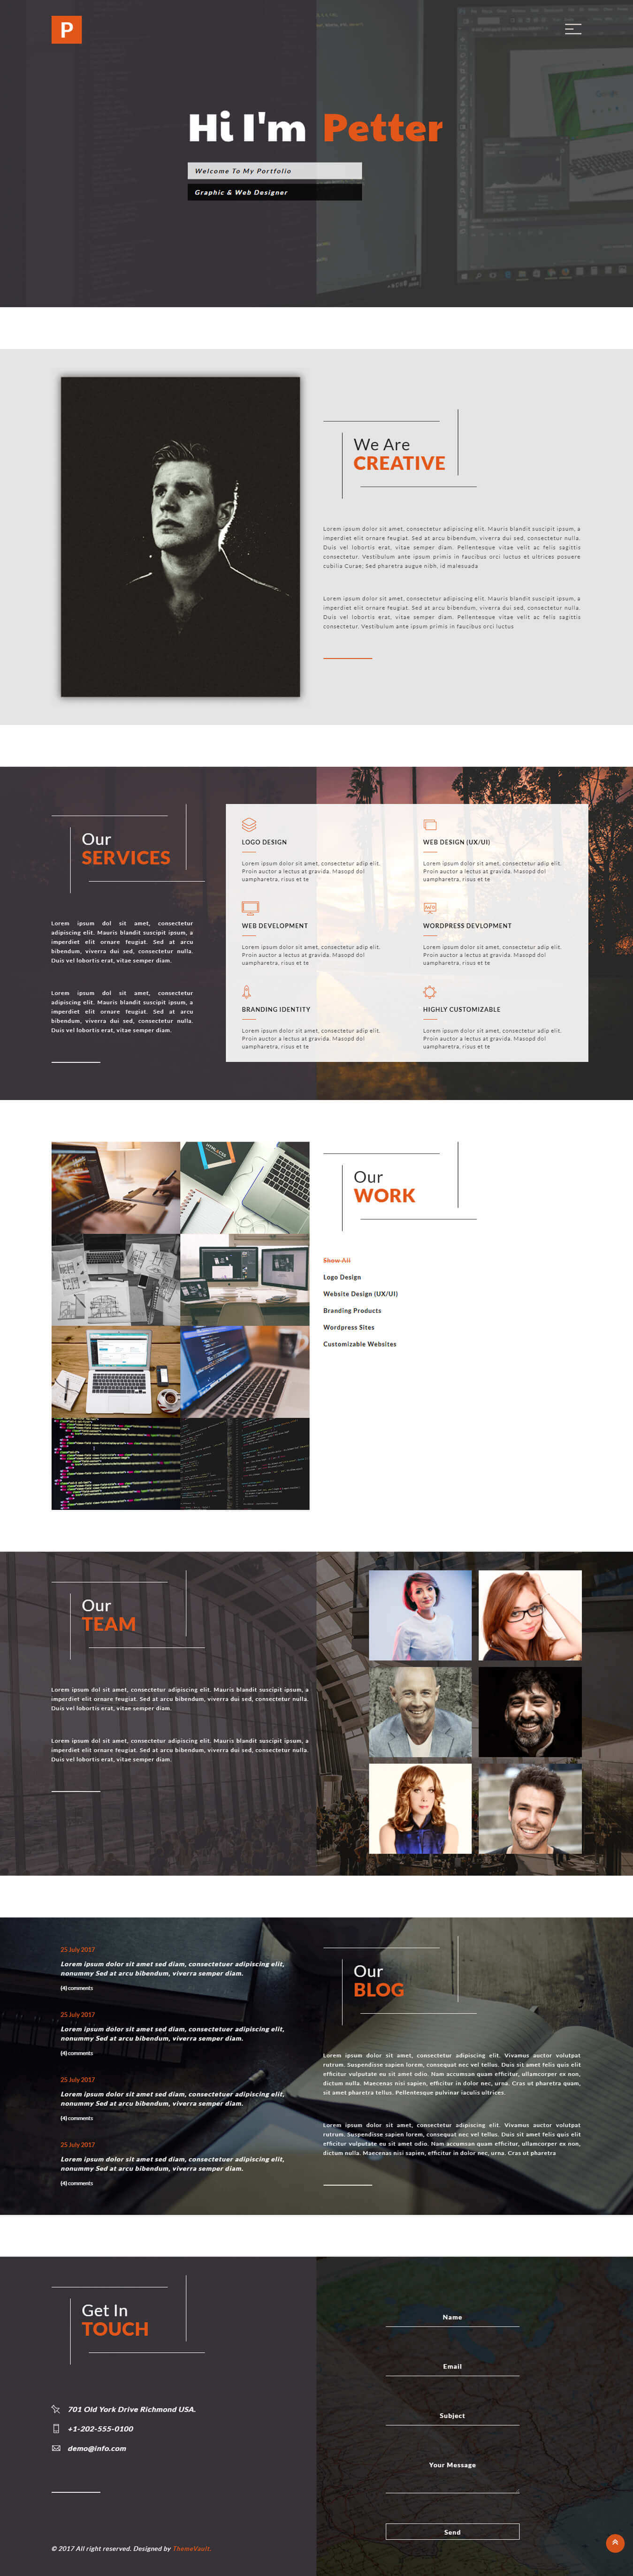 Petter - Graphic Design Portfolio Website Template HTML5 | ThemeVault